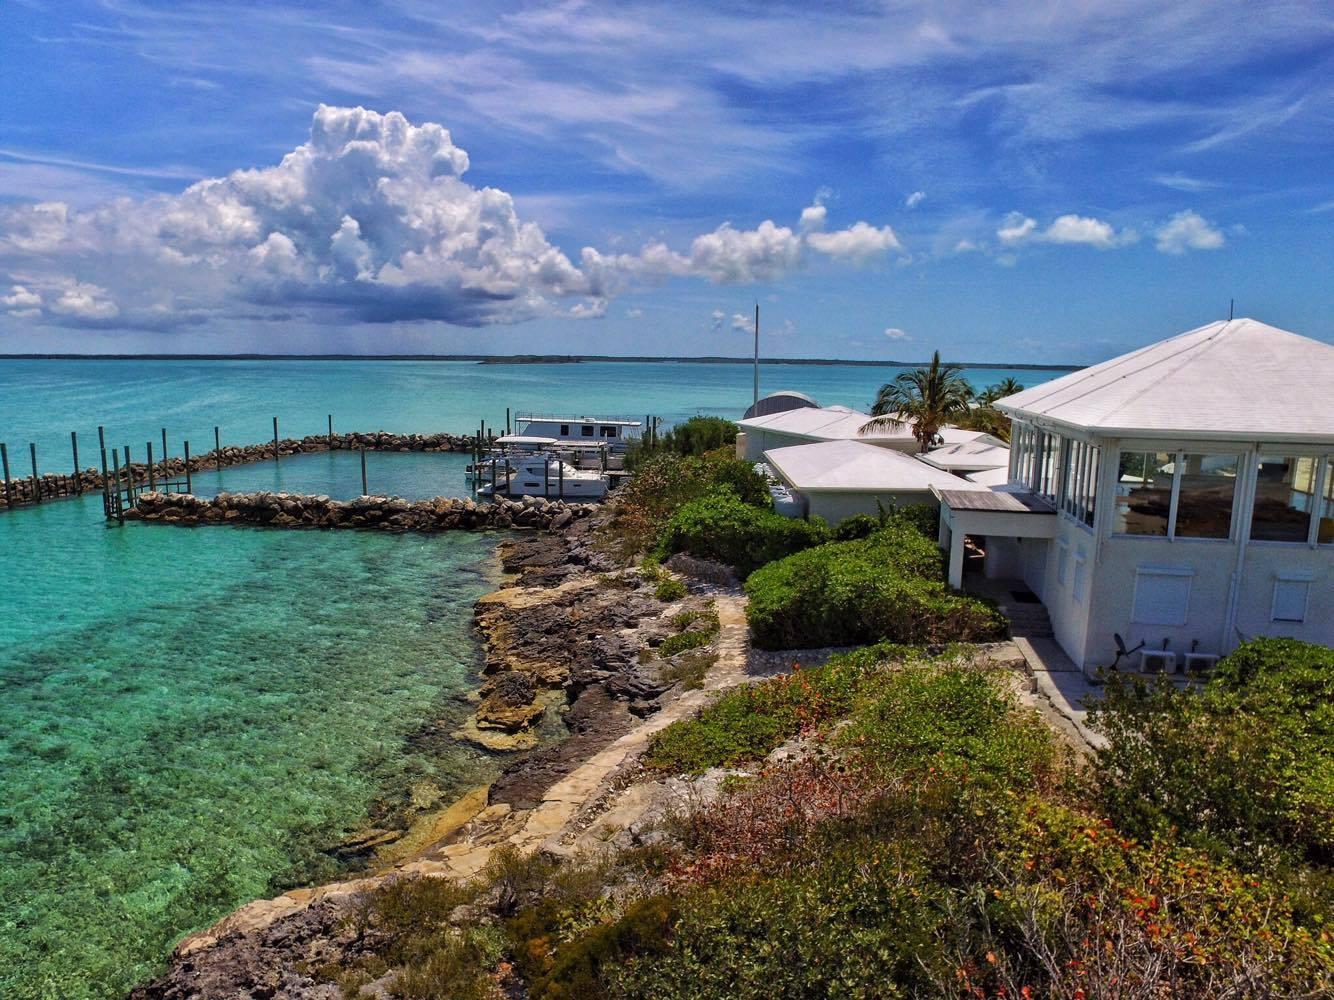 Lobster Island Bahamas for sale